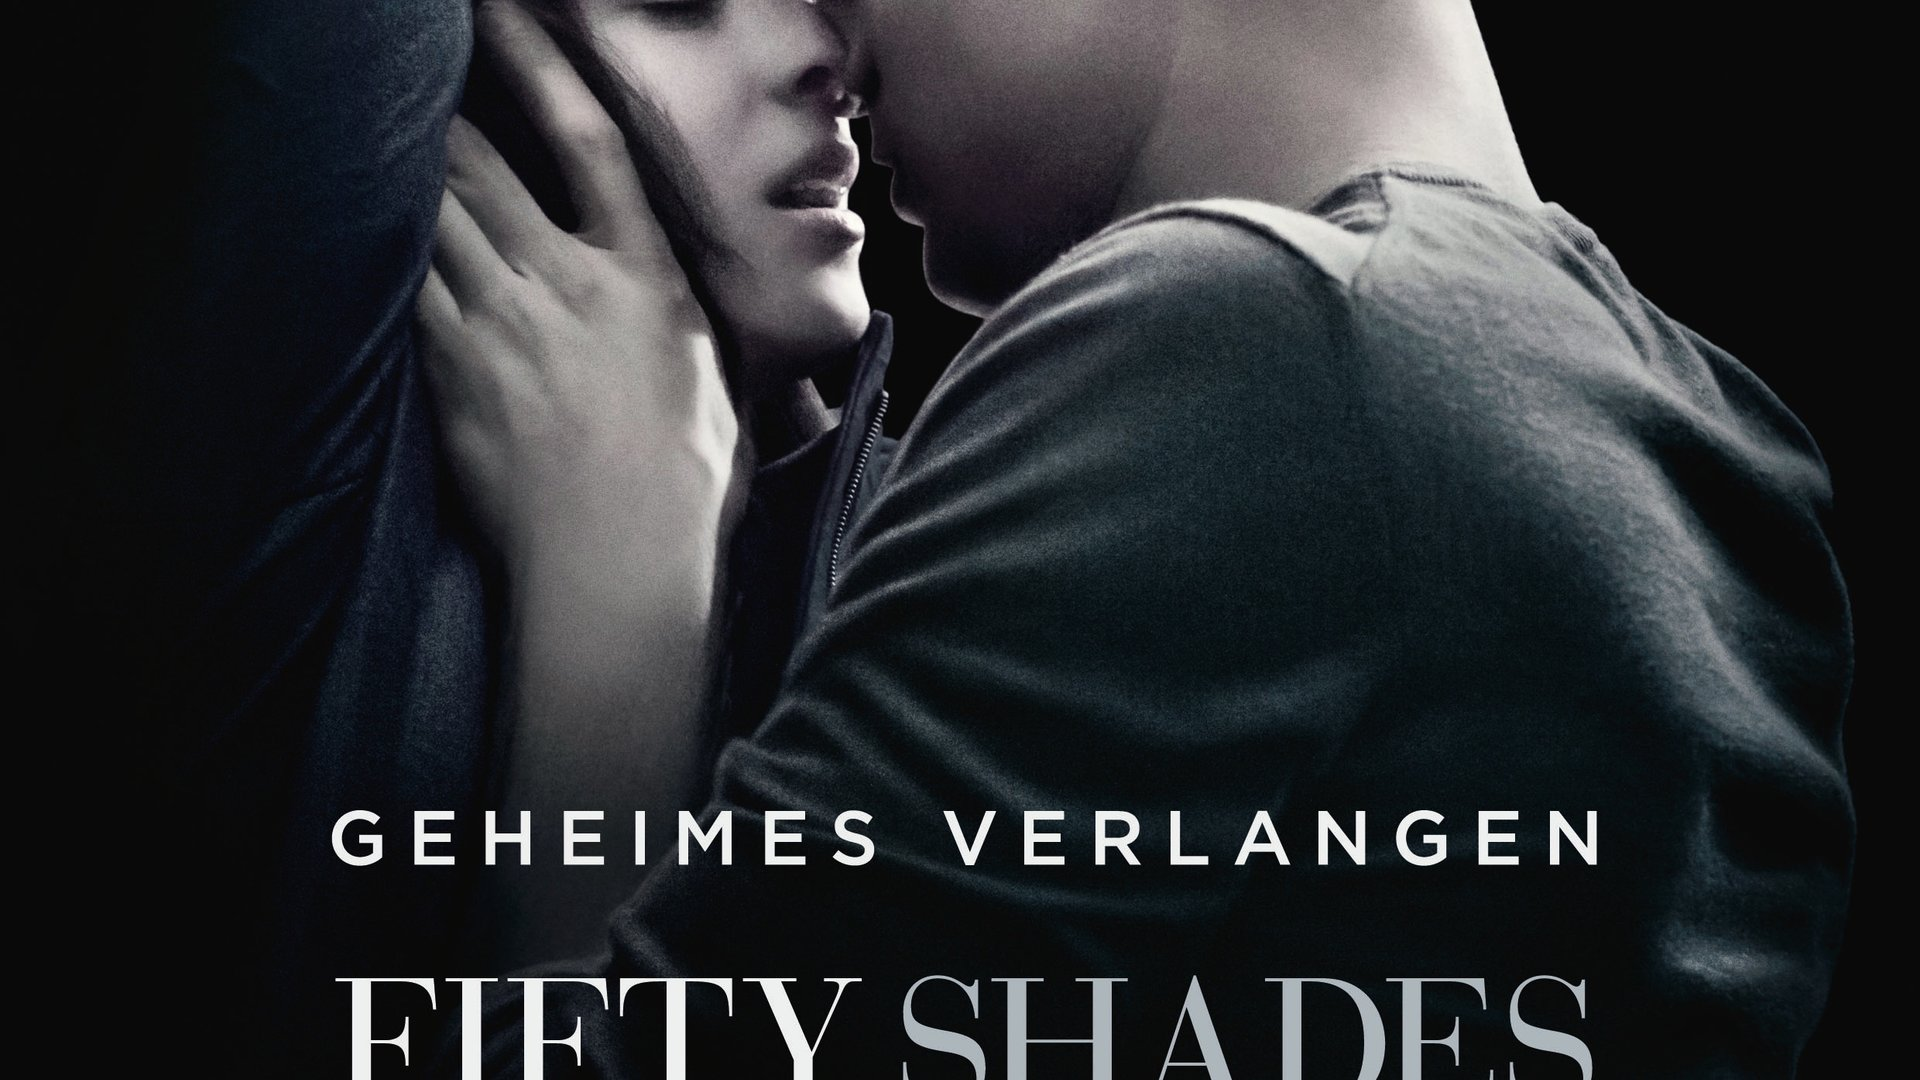 Of online shades 50 gray filme Fifty Shades